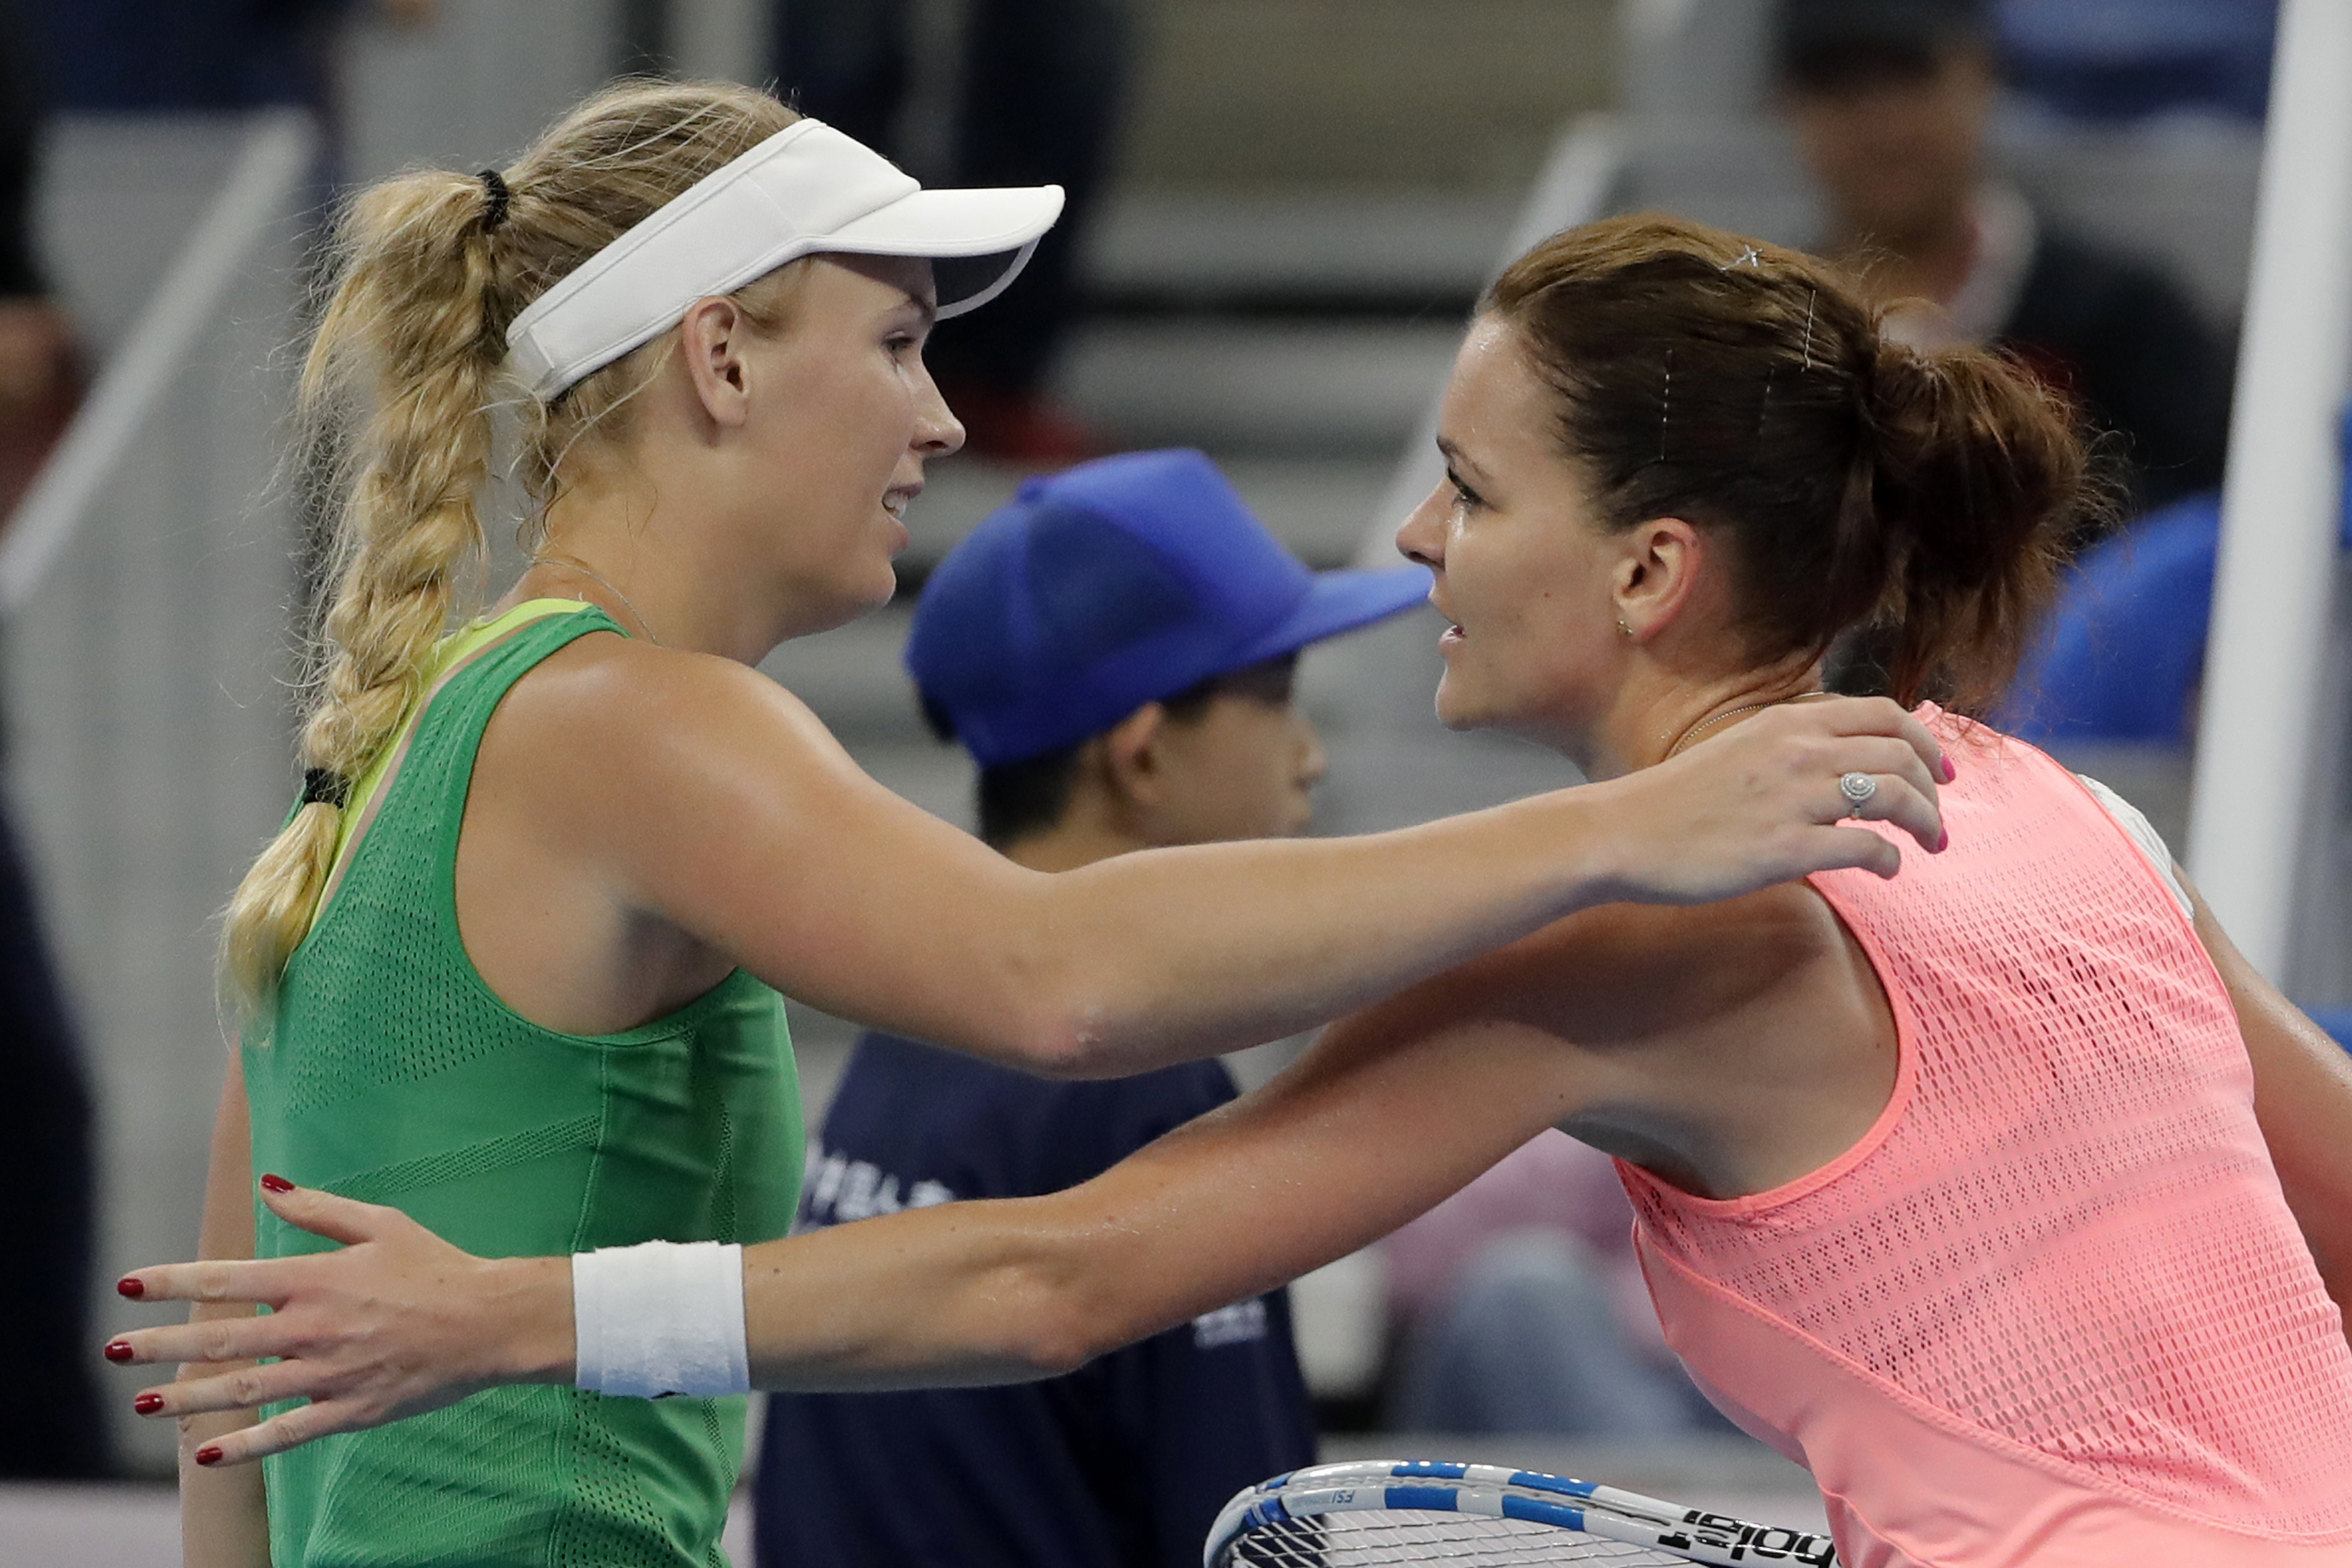 Agnieszka Radwanska of Poland, right, hugs with Caroline Wozniacki of Denmark after winning the women's singles of the China Open tennis tournament at the Diamond Court in Beijing, Thursday, Oct. 6, 2016. (AP Photo/Andy Wong)